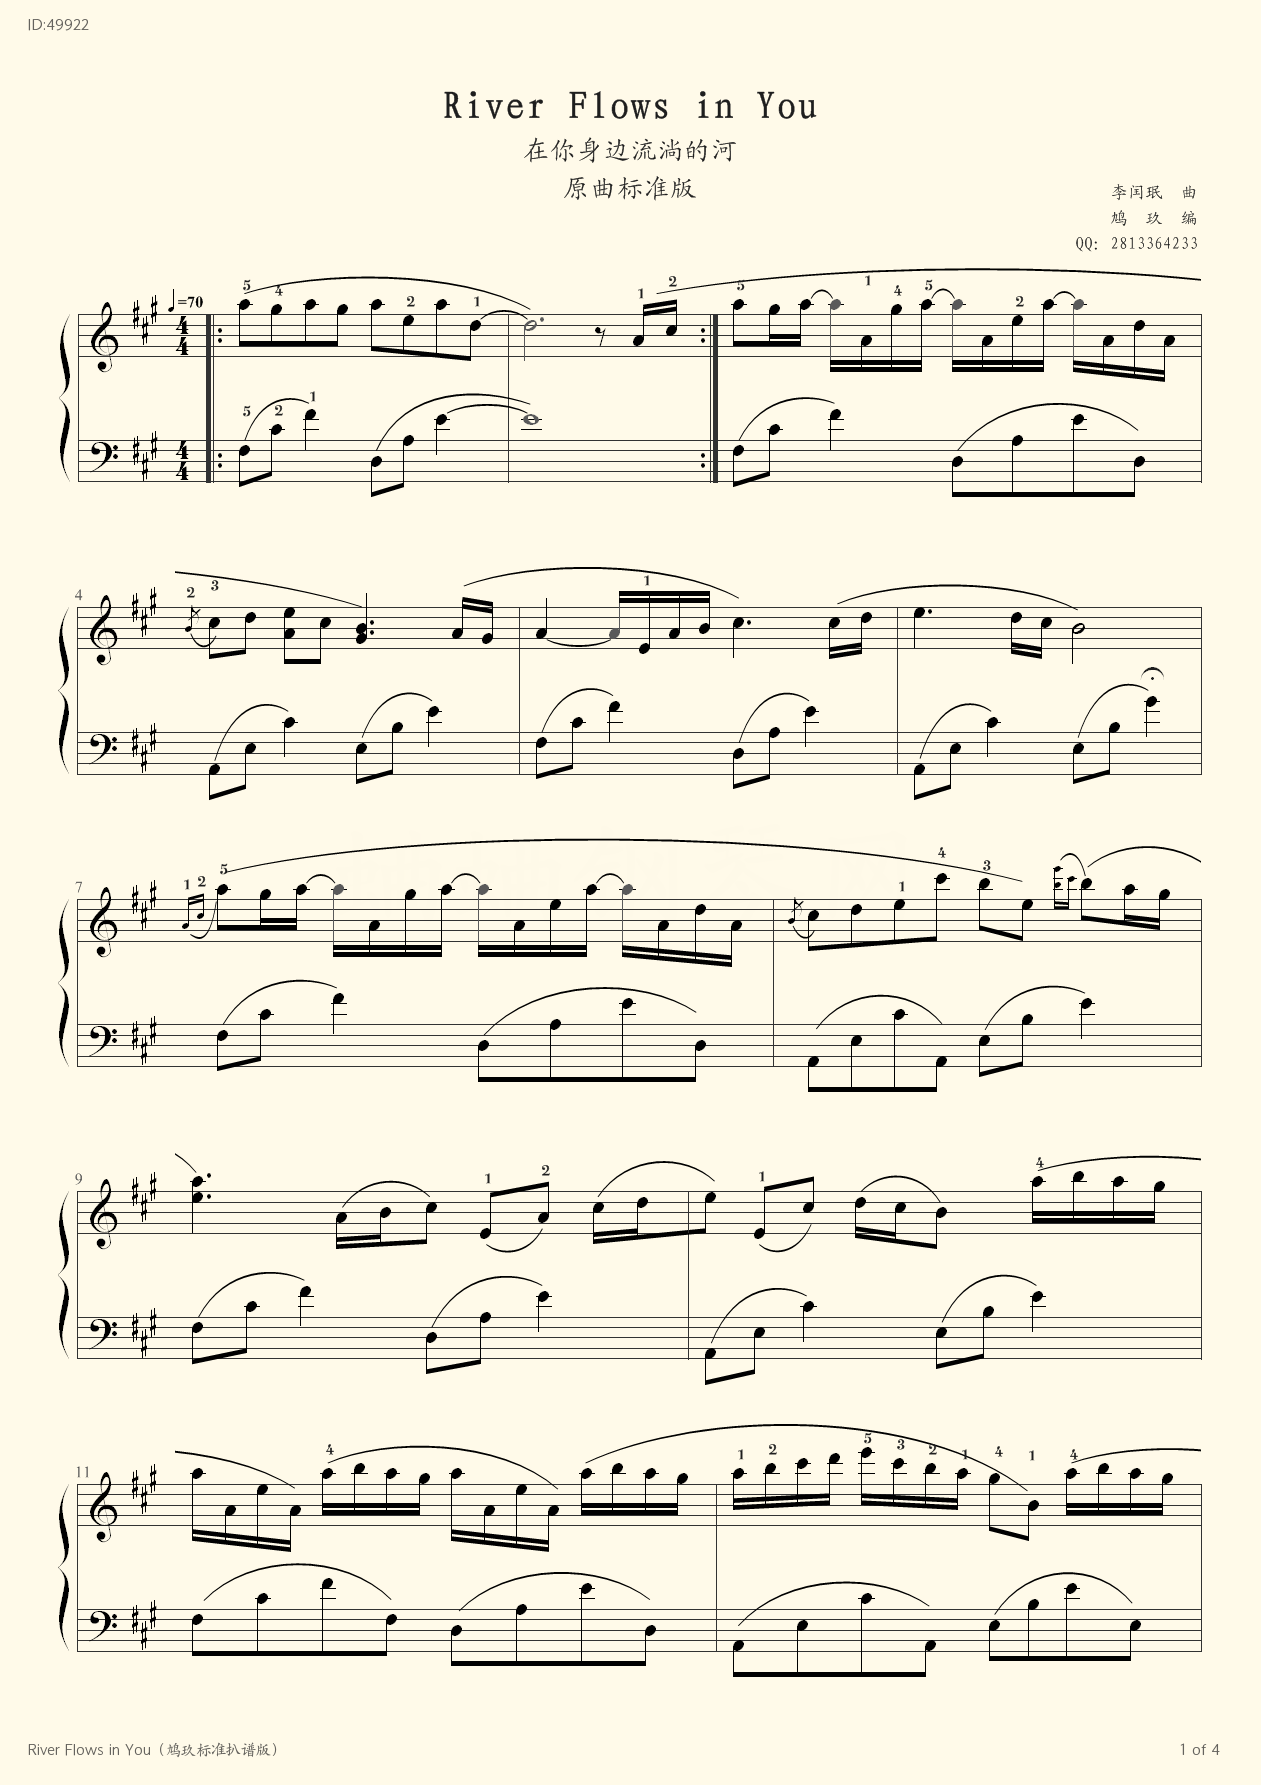 River Flows in You  - Yiruma - first page